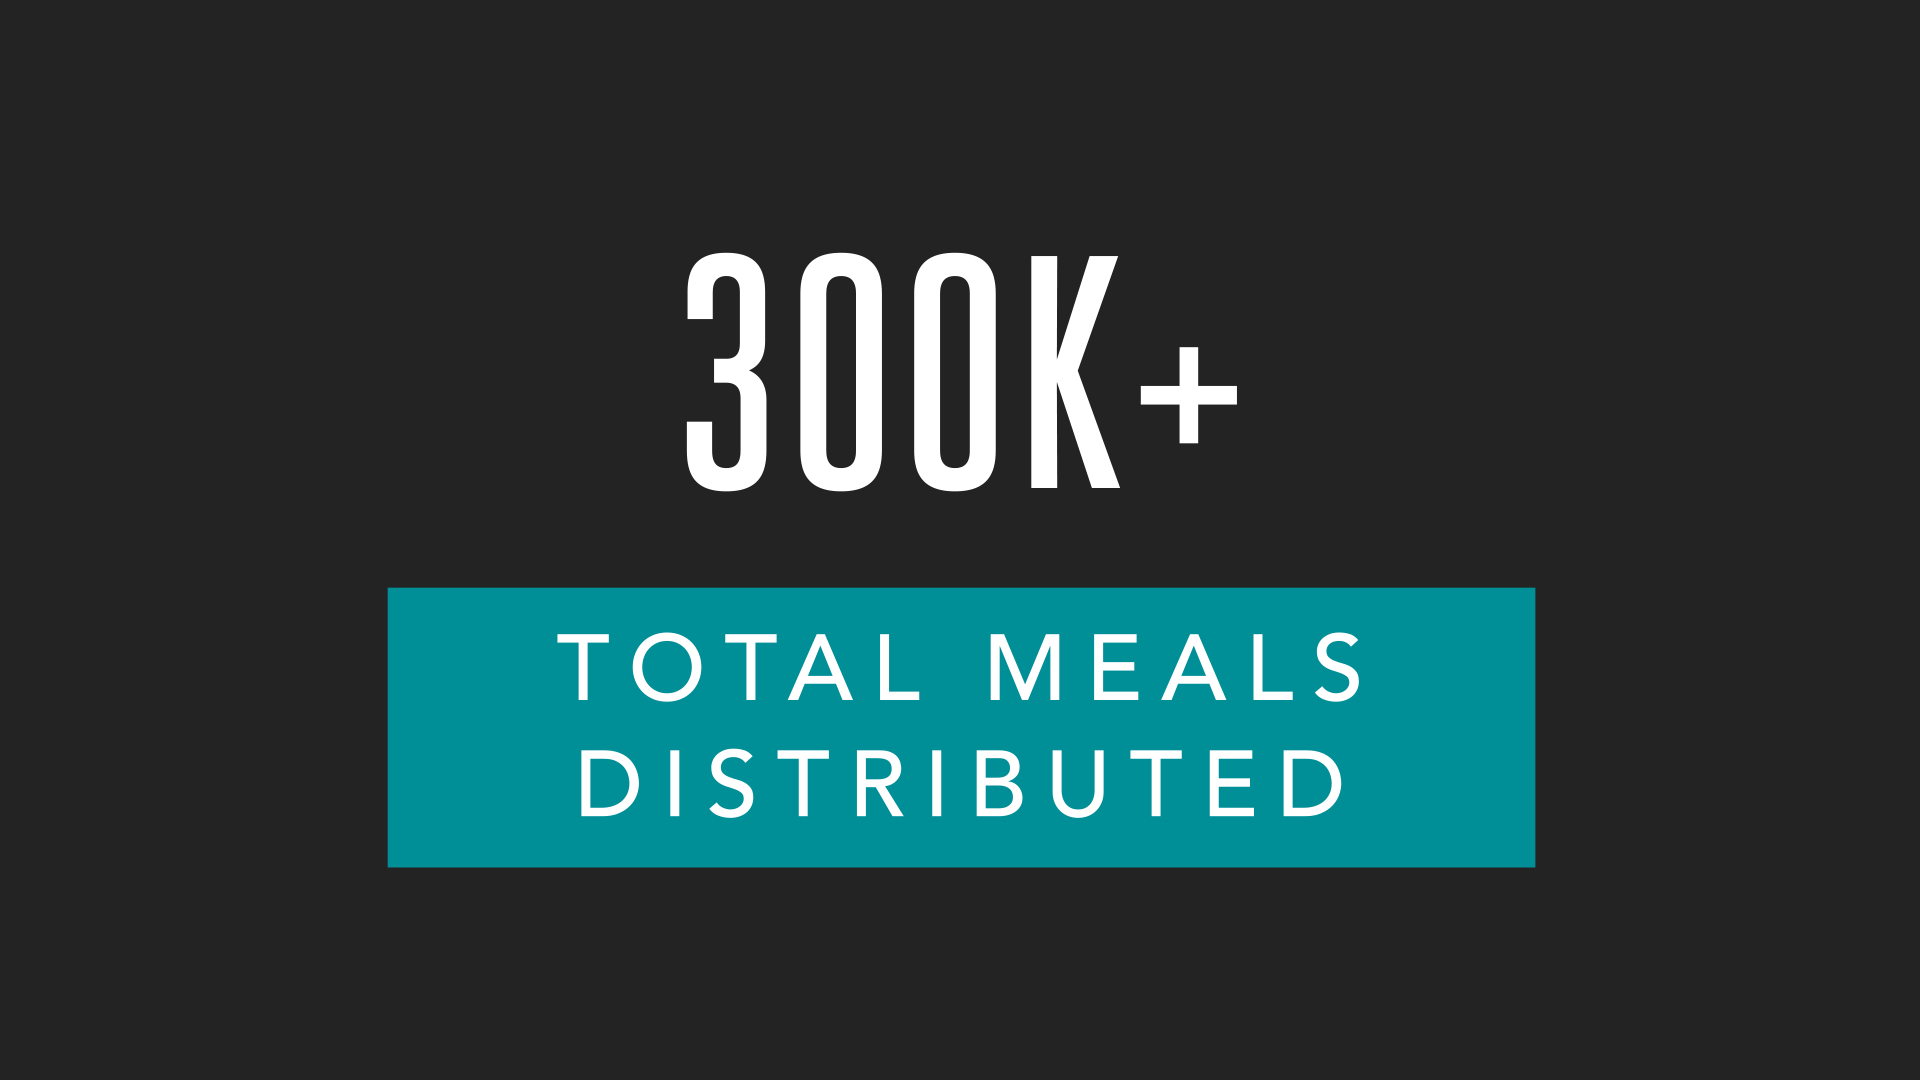 Food Relief Program - Over 300,000 Total Meals Distributed